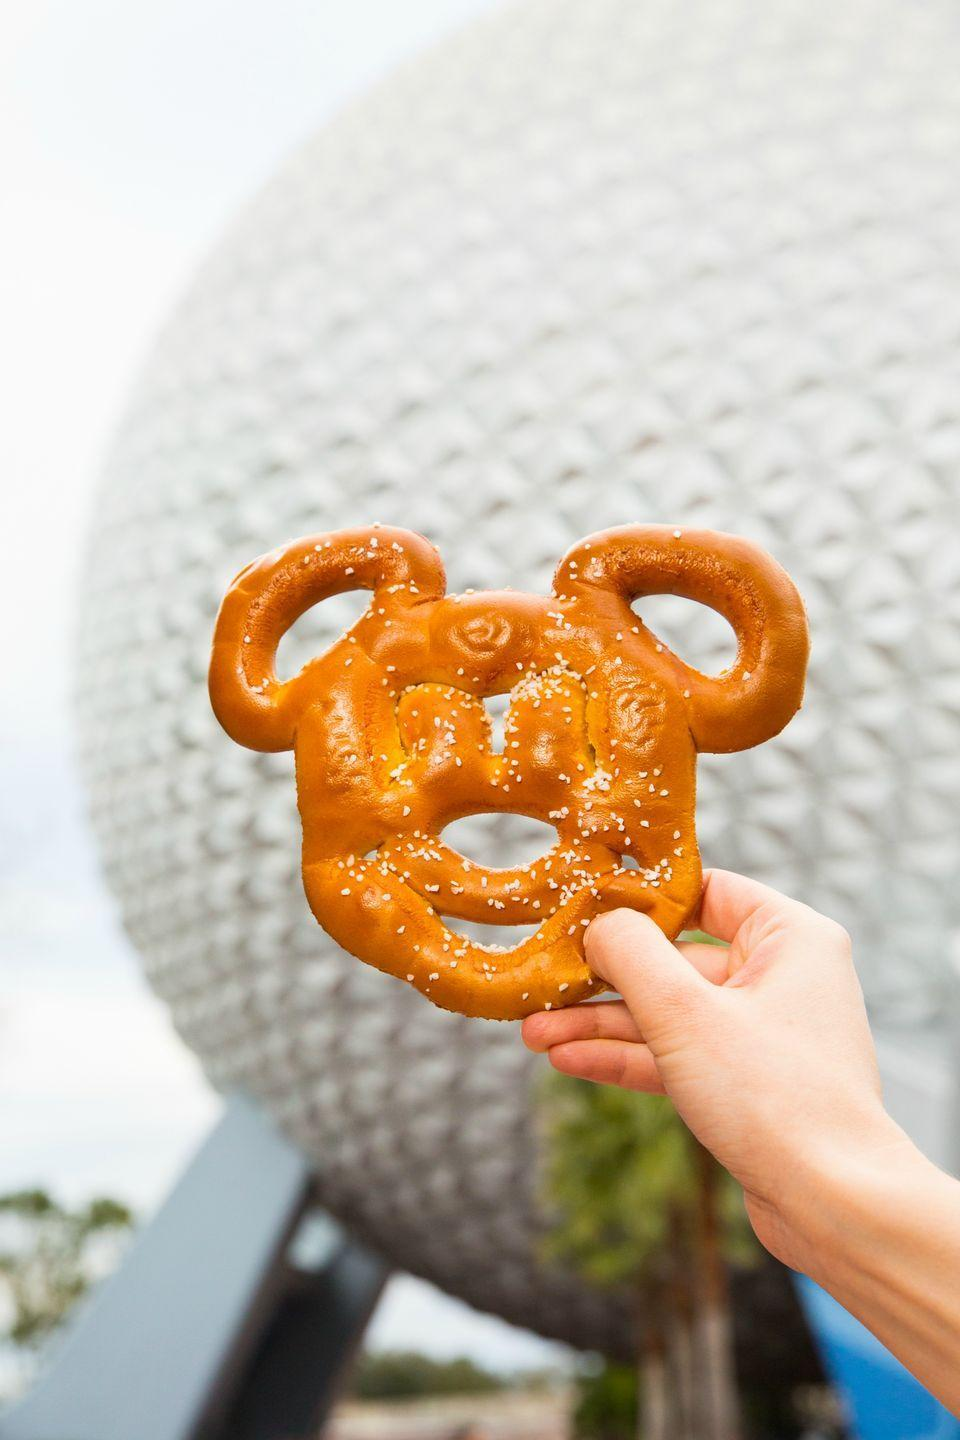 """<p>The Germany pavilion at Epcot opened in 1982 and from that moment on, <a href=""""https://www.delish.com/food-news/a32389104/disney-mickey-mouse-pretzel-recipe/"""" rel=""""nofollow noopener"""" target=""""_blank"""" data-ylk=""""slk:Mickey Mouse Pretzels"""" class=""""link rapid-noclick-resp"""">Mickey Mouse Pretzels</a> ruled supreme. This fan-favorite is truly golden. </p>"""